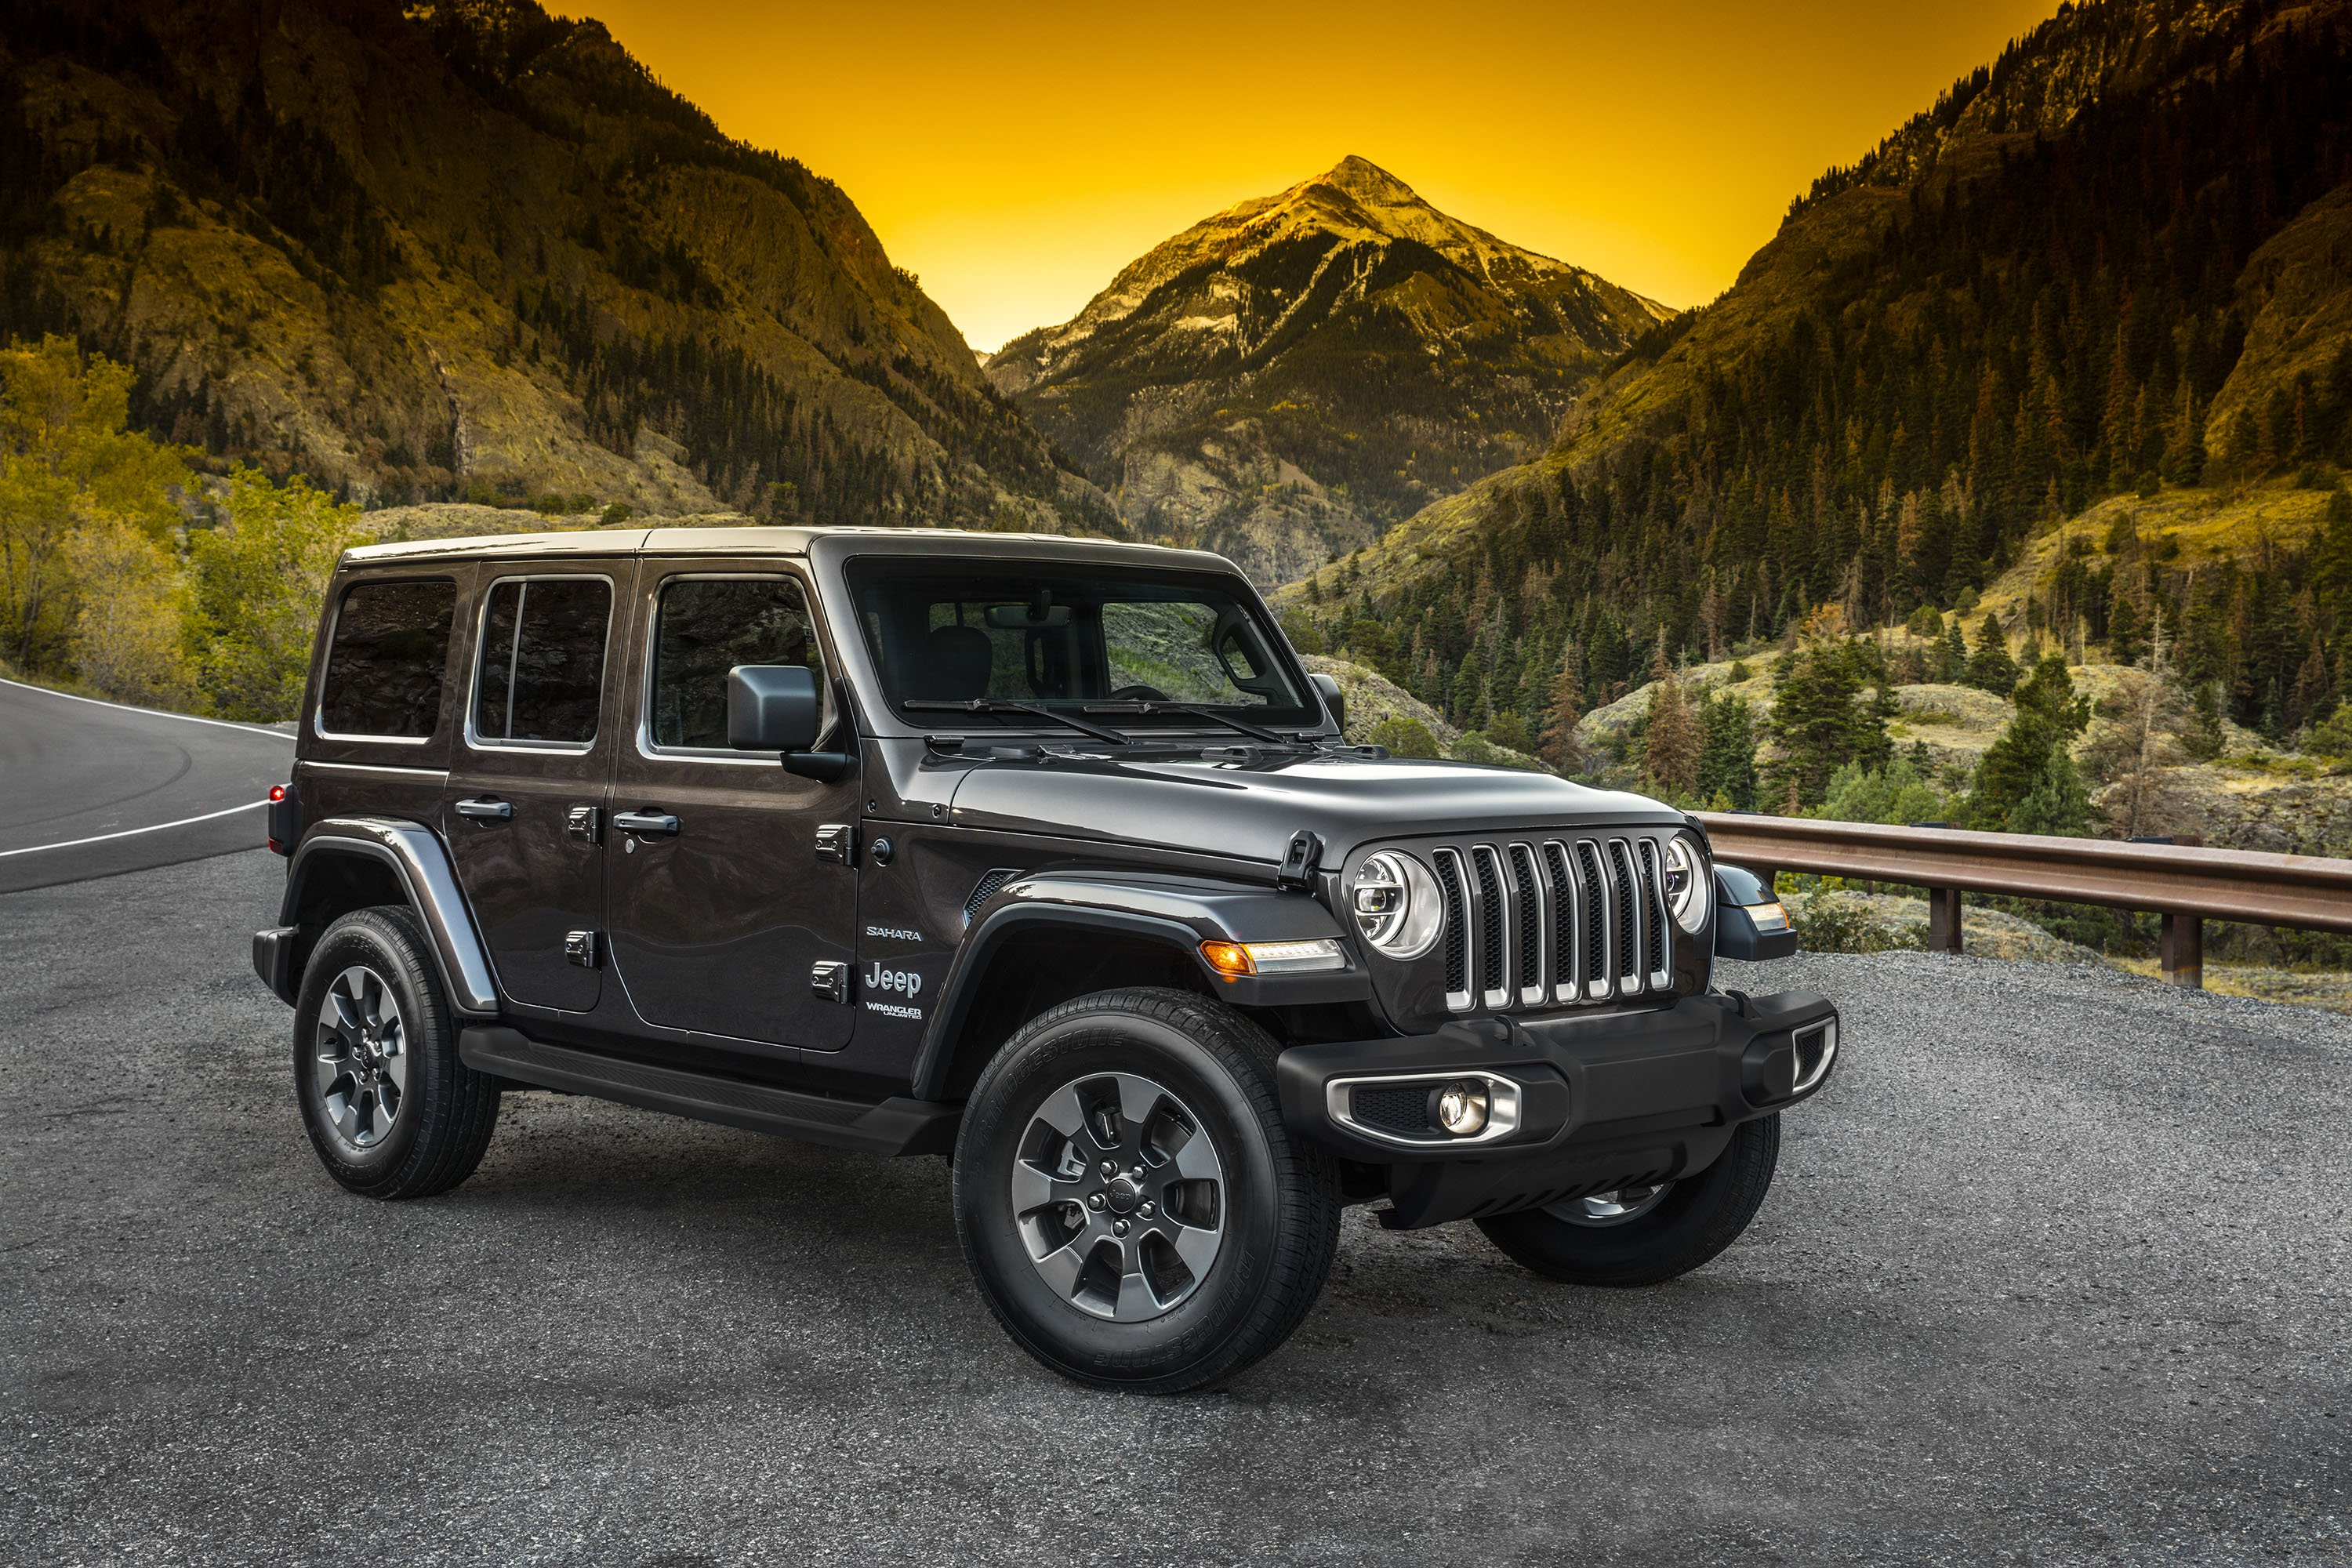 59 New 2020 Jeep Wrangler Price Design and Review